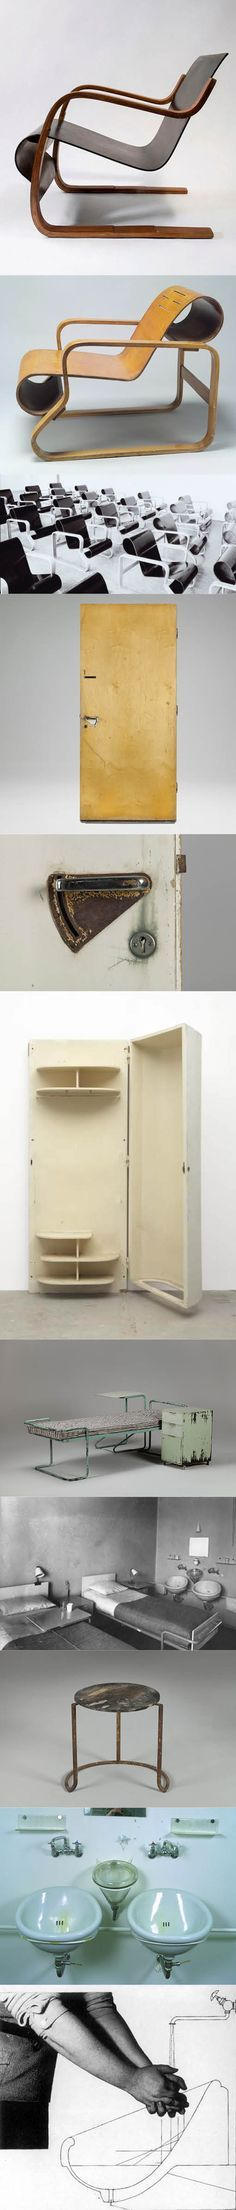 1929-1933 Alvar & Aino Aalto - furniture for the Paimio Sanatorium / model 31 chair / model 41 lounge chair / door & doorhandle 8283 / cabinet 8462 / sidetable, bed & locker / hall stool 8282 all by Huonekalu-ja Rakennustyötehdas Oy / Arabia 8281 hand bassin & Karhula 8505 spittoon / Finland / birch steel